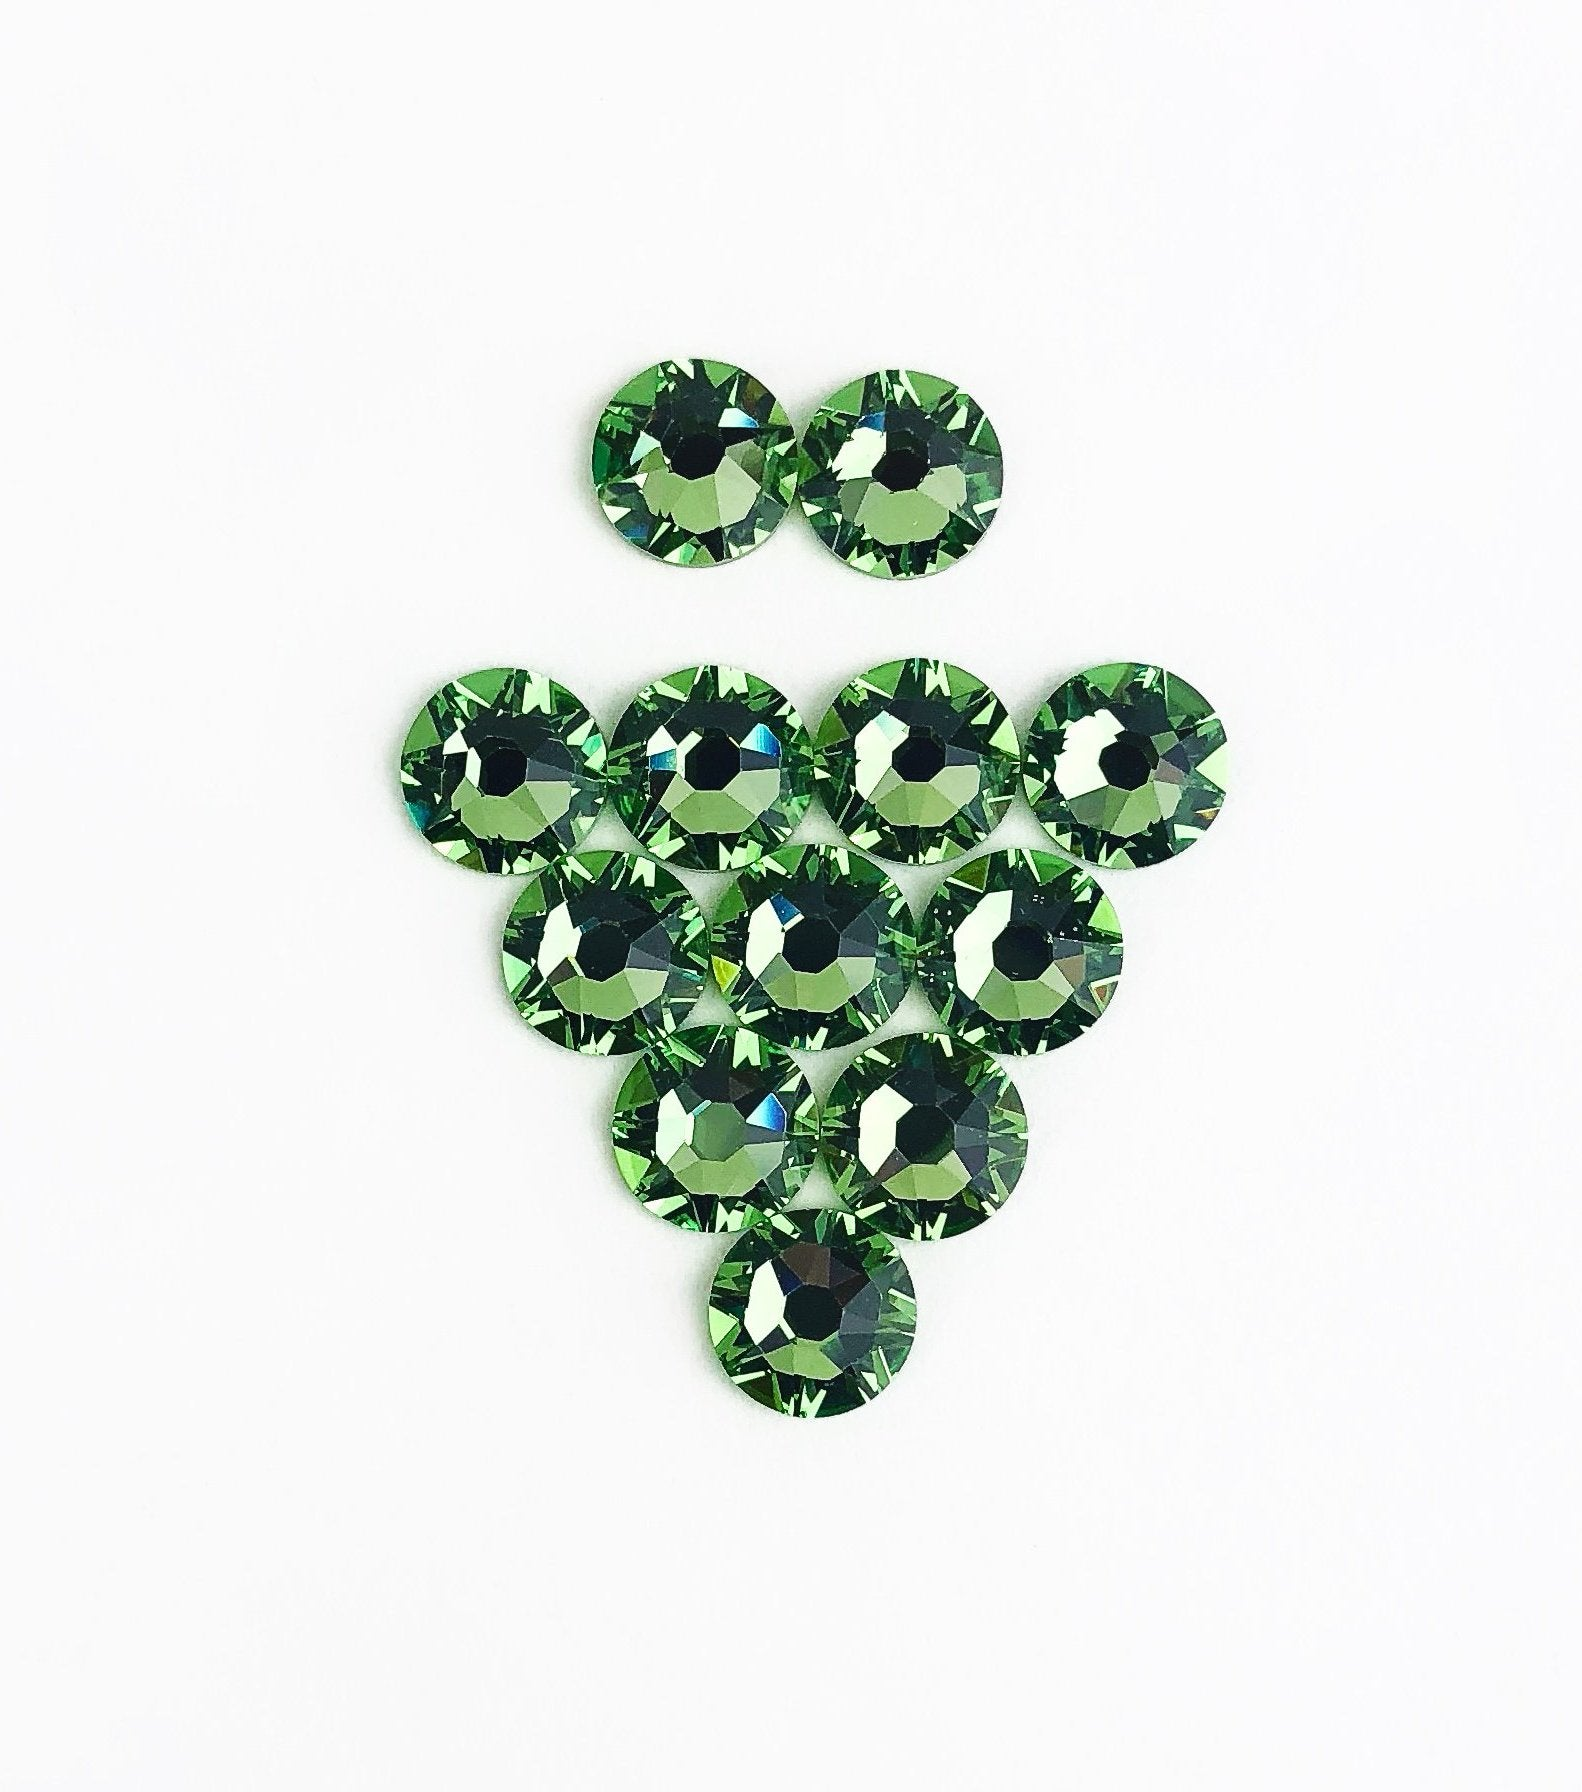 Shmoney Green Swarovski Crystal at Home Kit